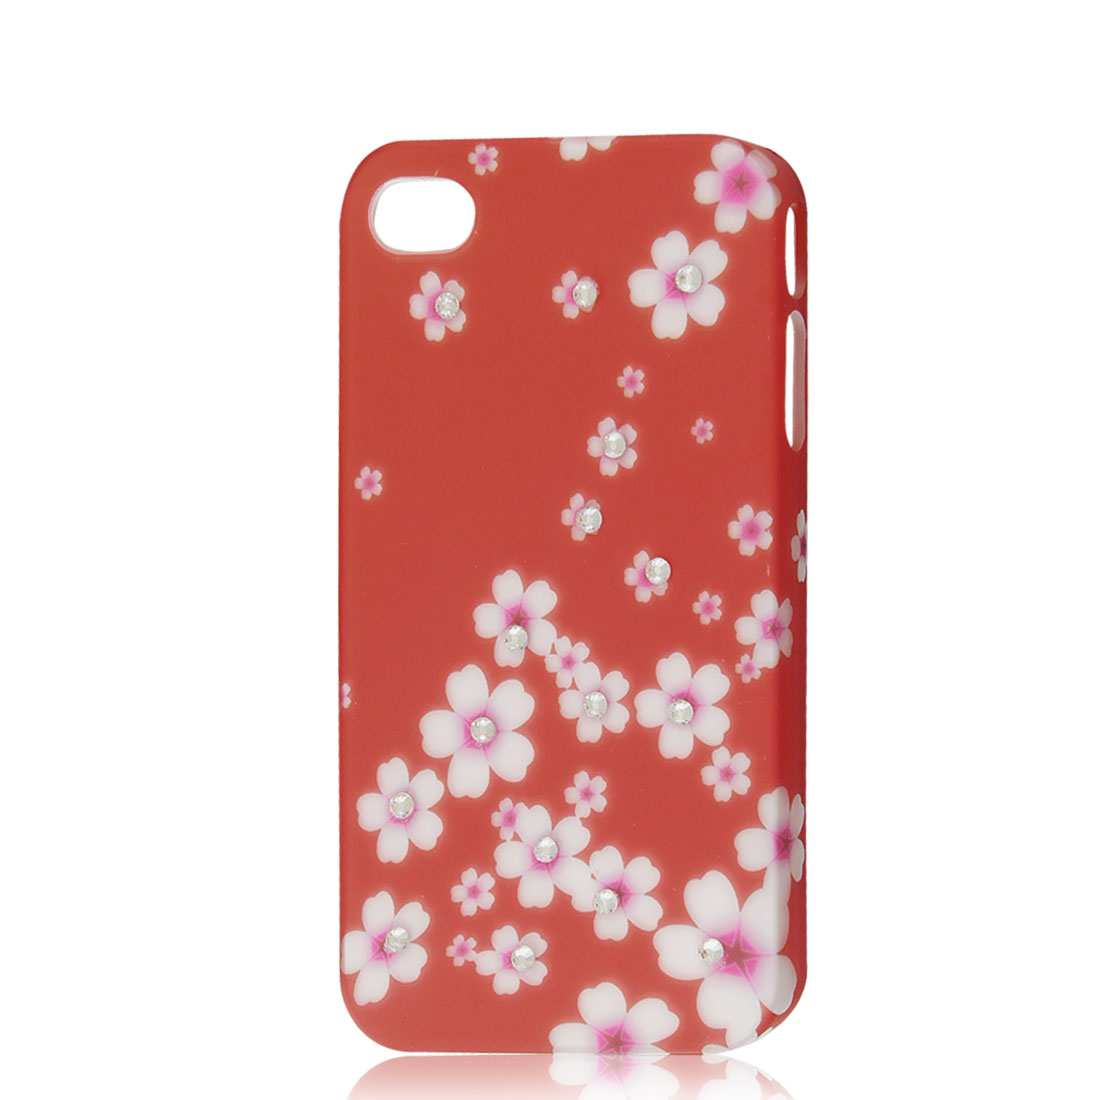 Glitter Rhinestone Flower Hard Case Back Cover Orange Red for iPhone 4 4G